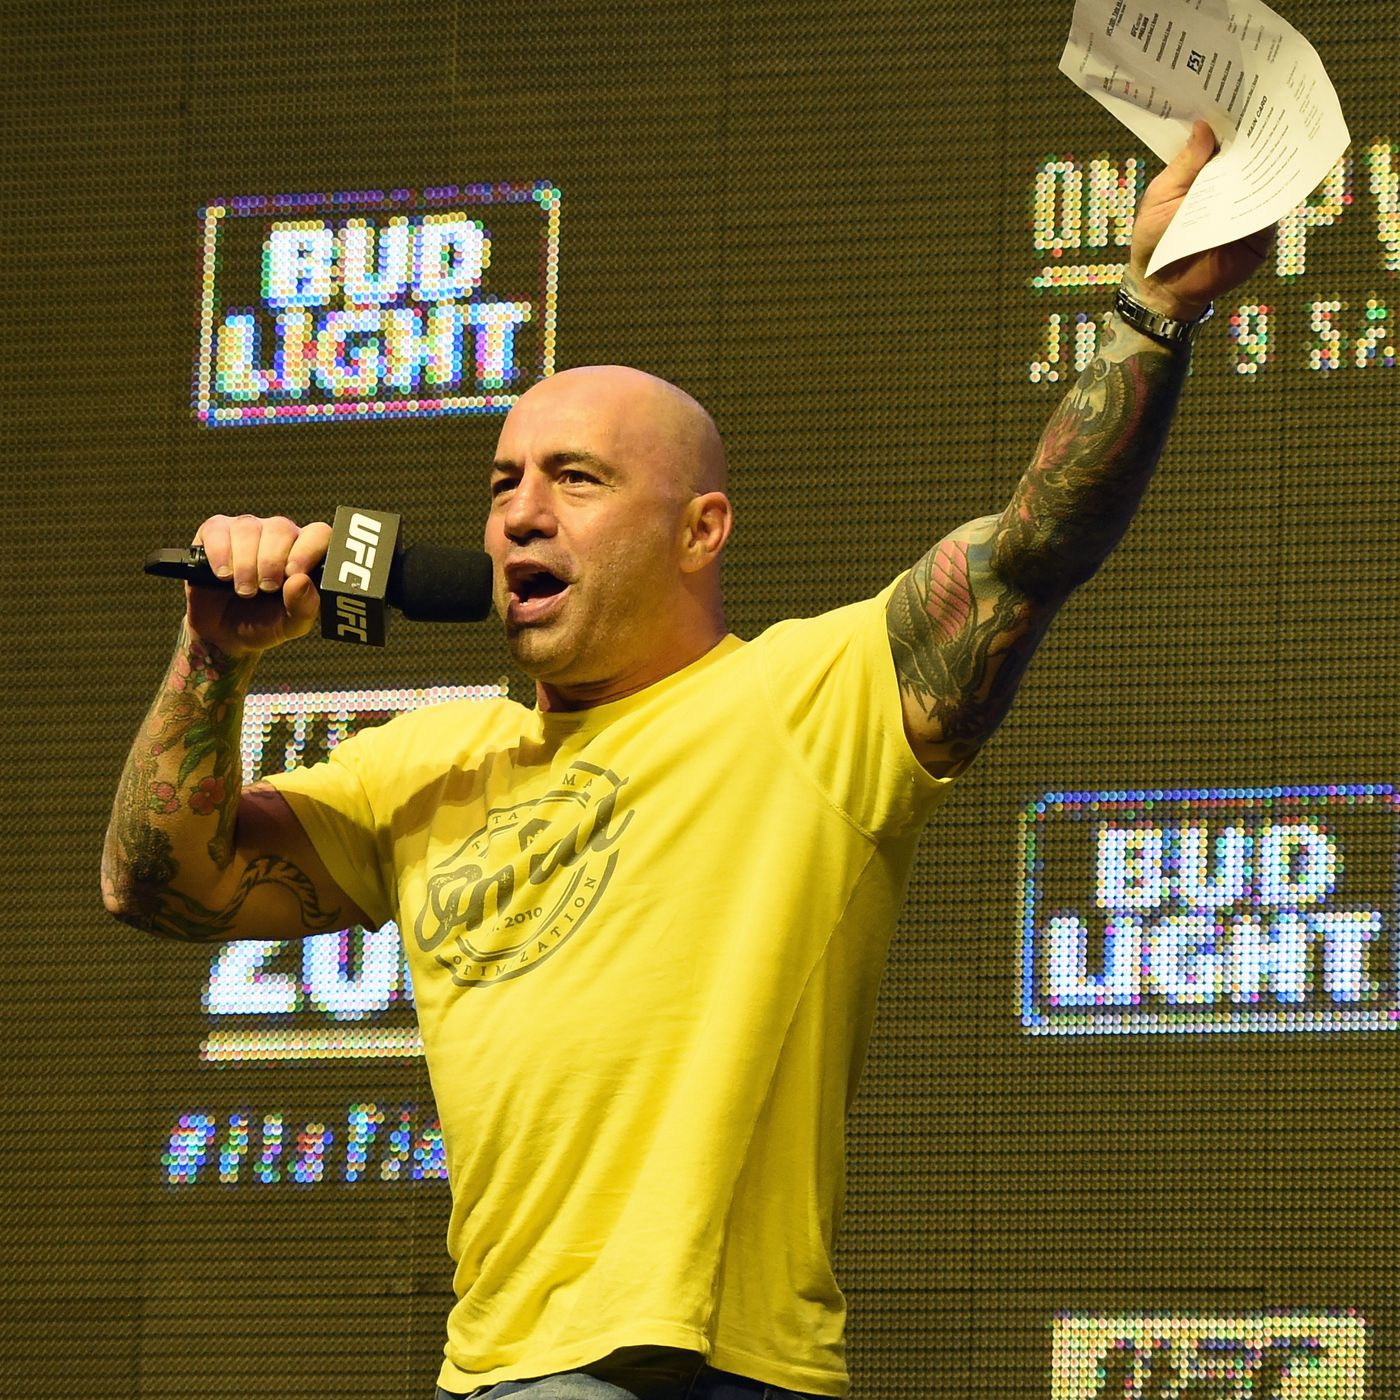 Joe Rogan On Beef With Fox Sports They Paid Me Less And Tried To Turn Me Into A Sports Guy Mmamania Com